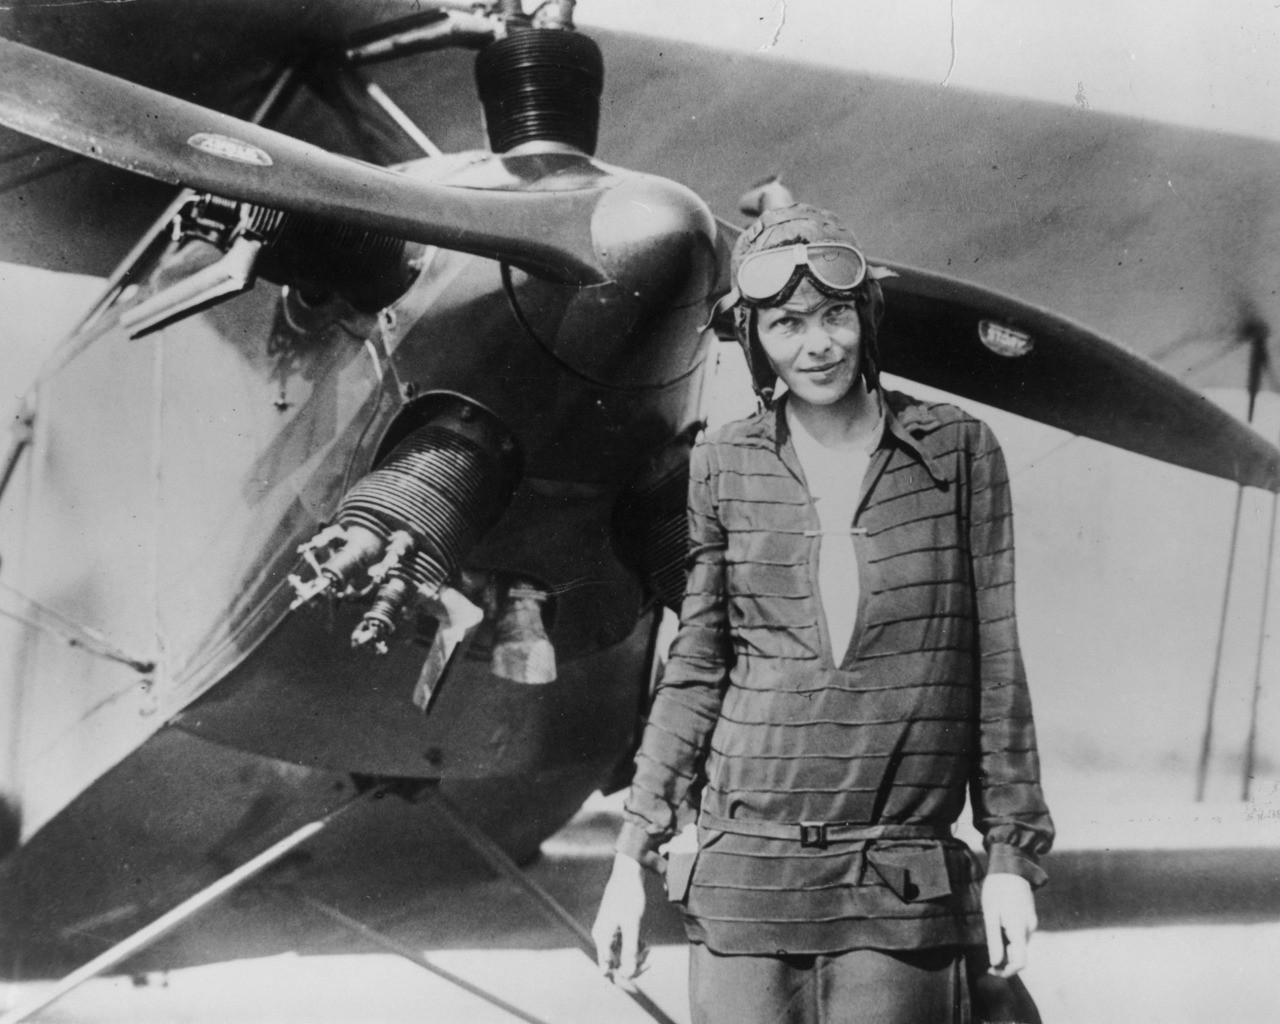 Amelia Earhart in front of her first airplane, a Kinner Airster, c. 1921